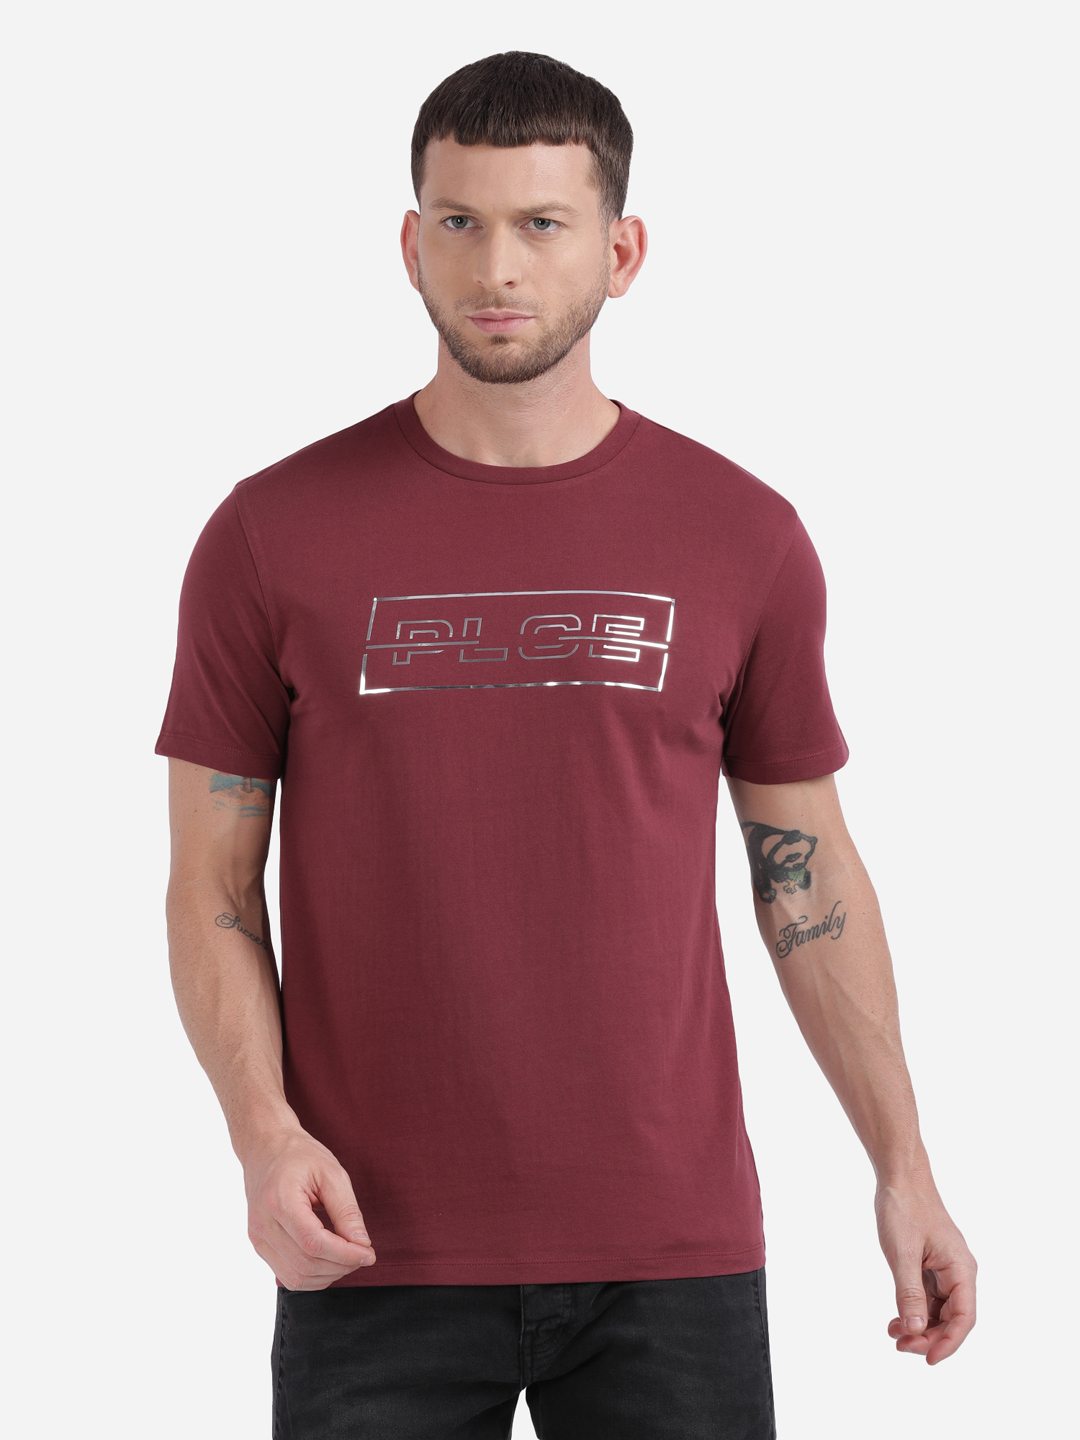 883 Police   883 Police Blizzard India T-shirt